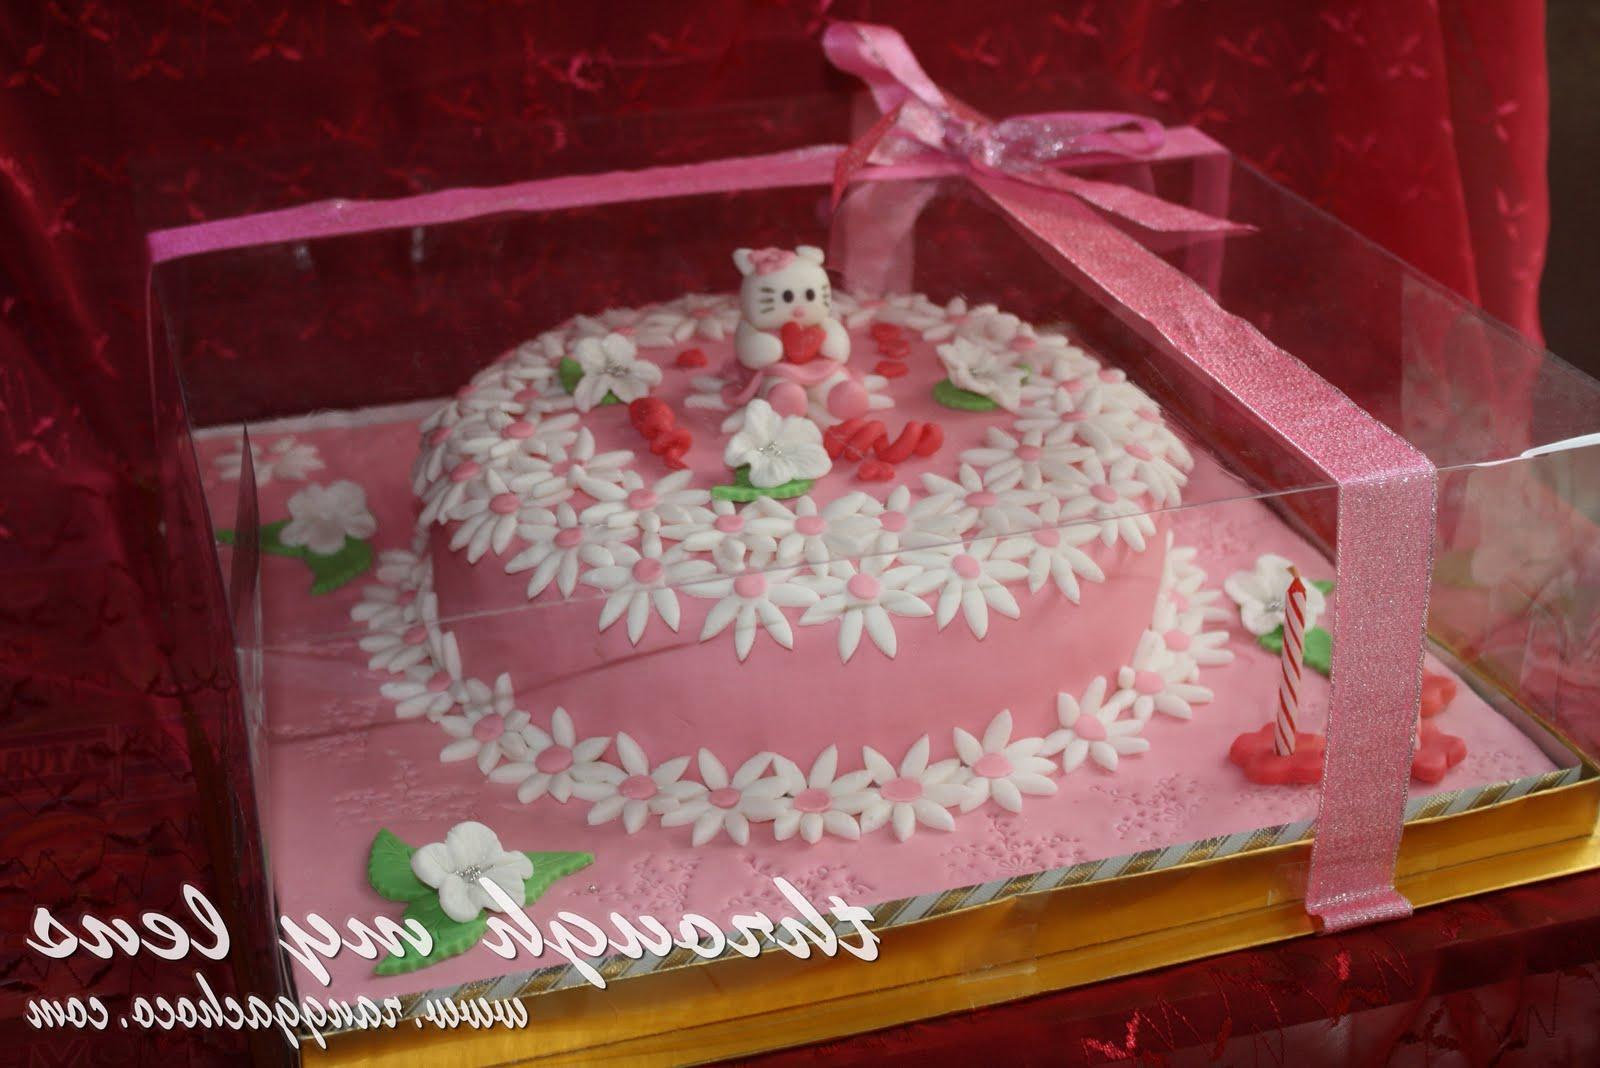 Debszs blog Name hello kitty cake mold